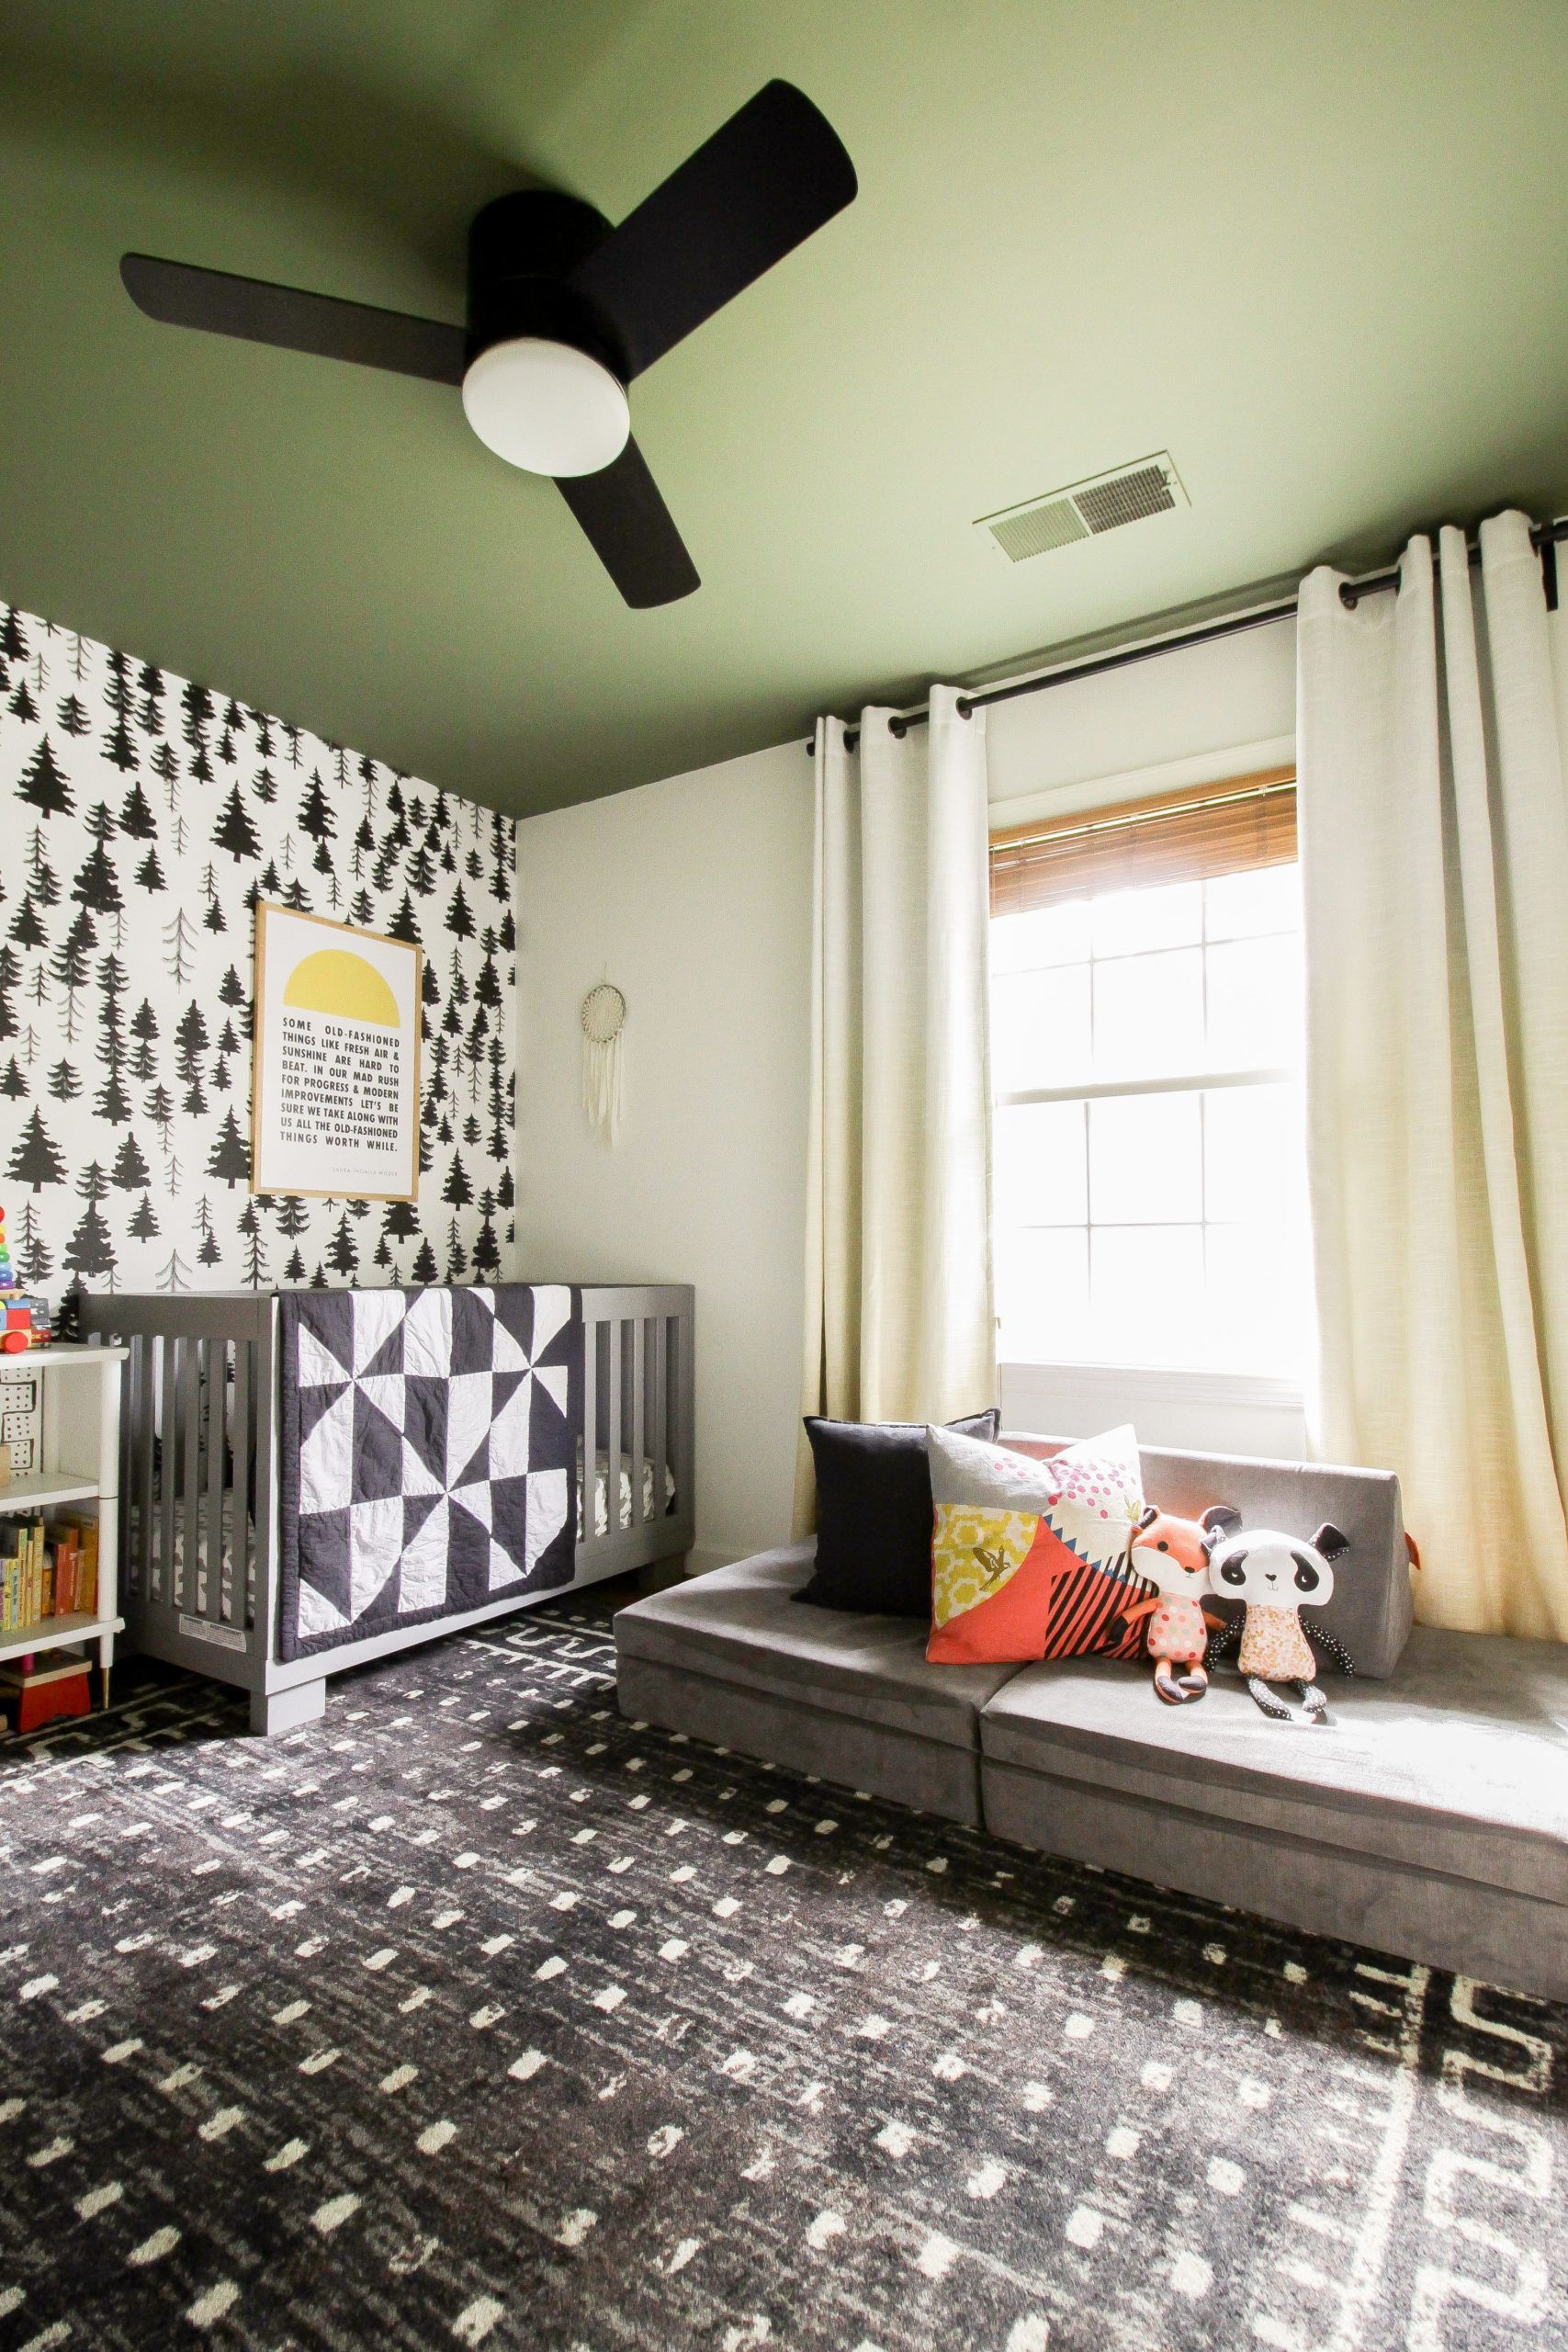 How To Select Colored Paint For The Ceiling Wilder S Room Reveal In 2020 Kid Room Decor Pink Living Room Rooms Reveal